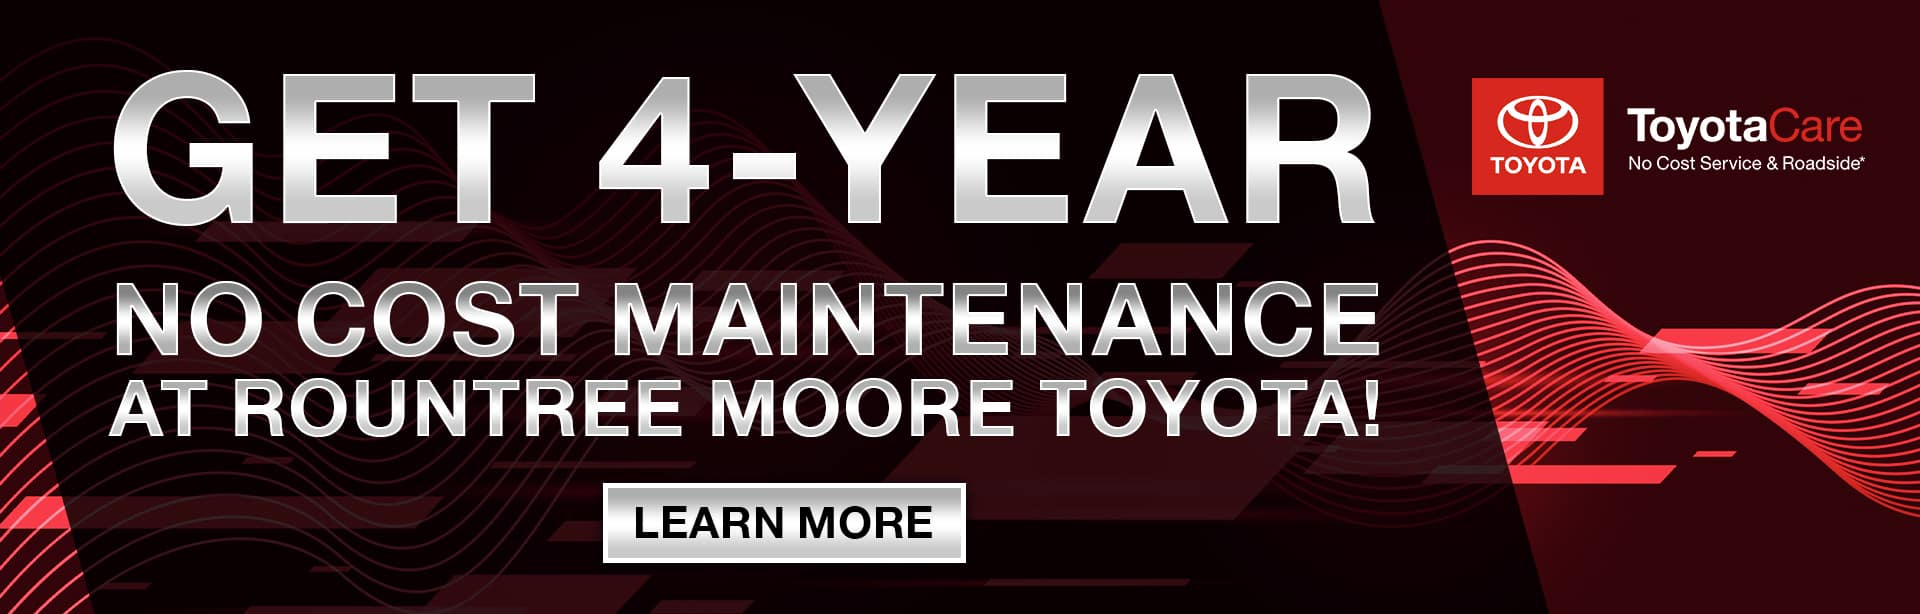 Get 4-Year No Cost Maintenance At Rountree Moore Toyota | ToyotaCare No Cost Service & Roadside*